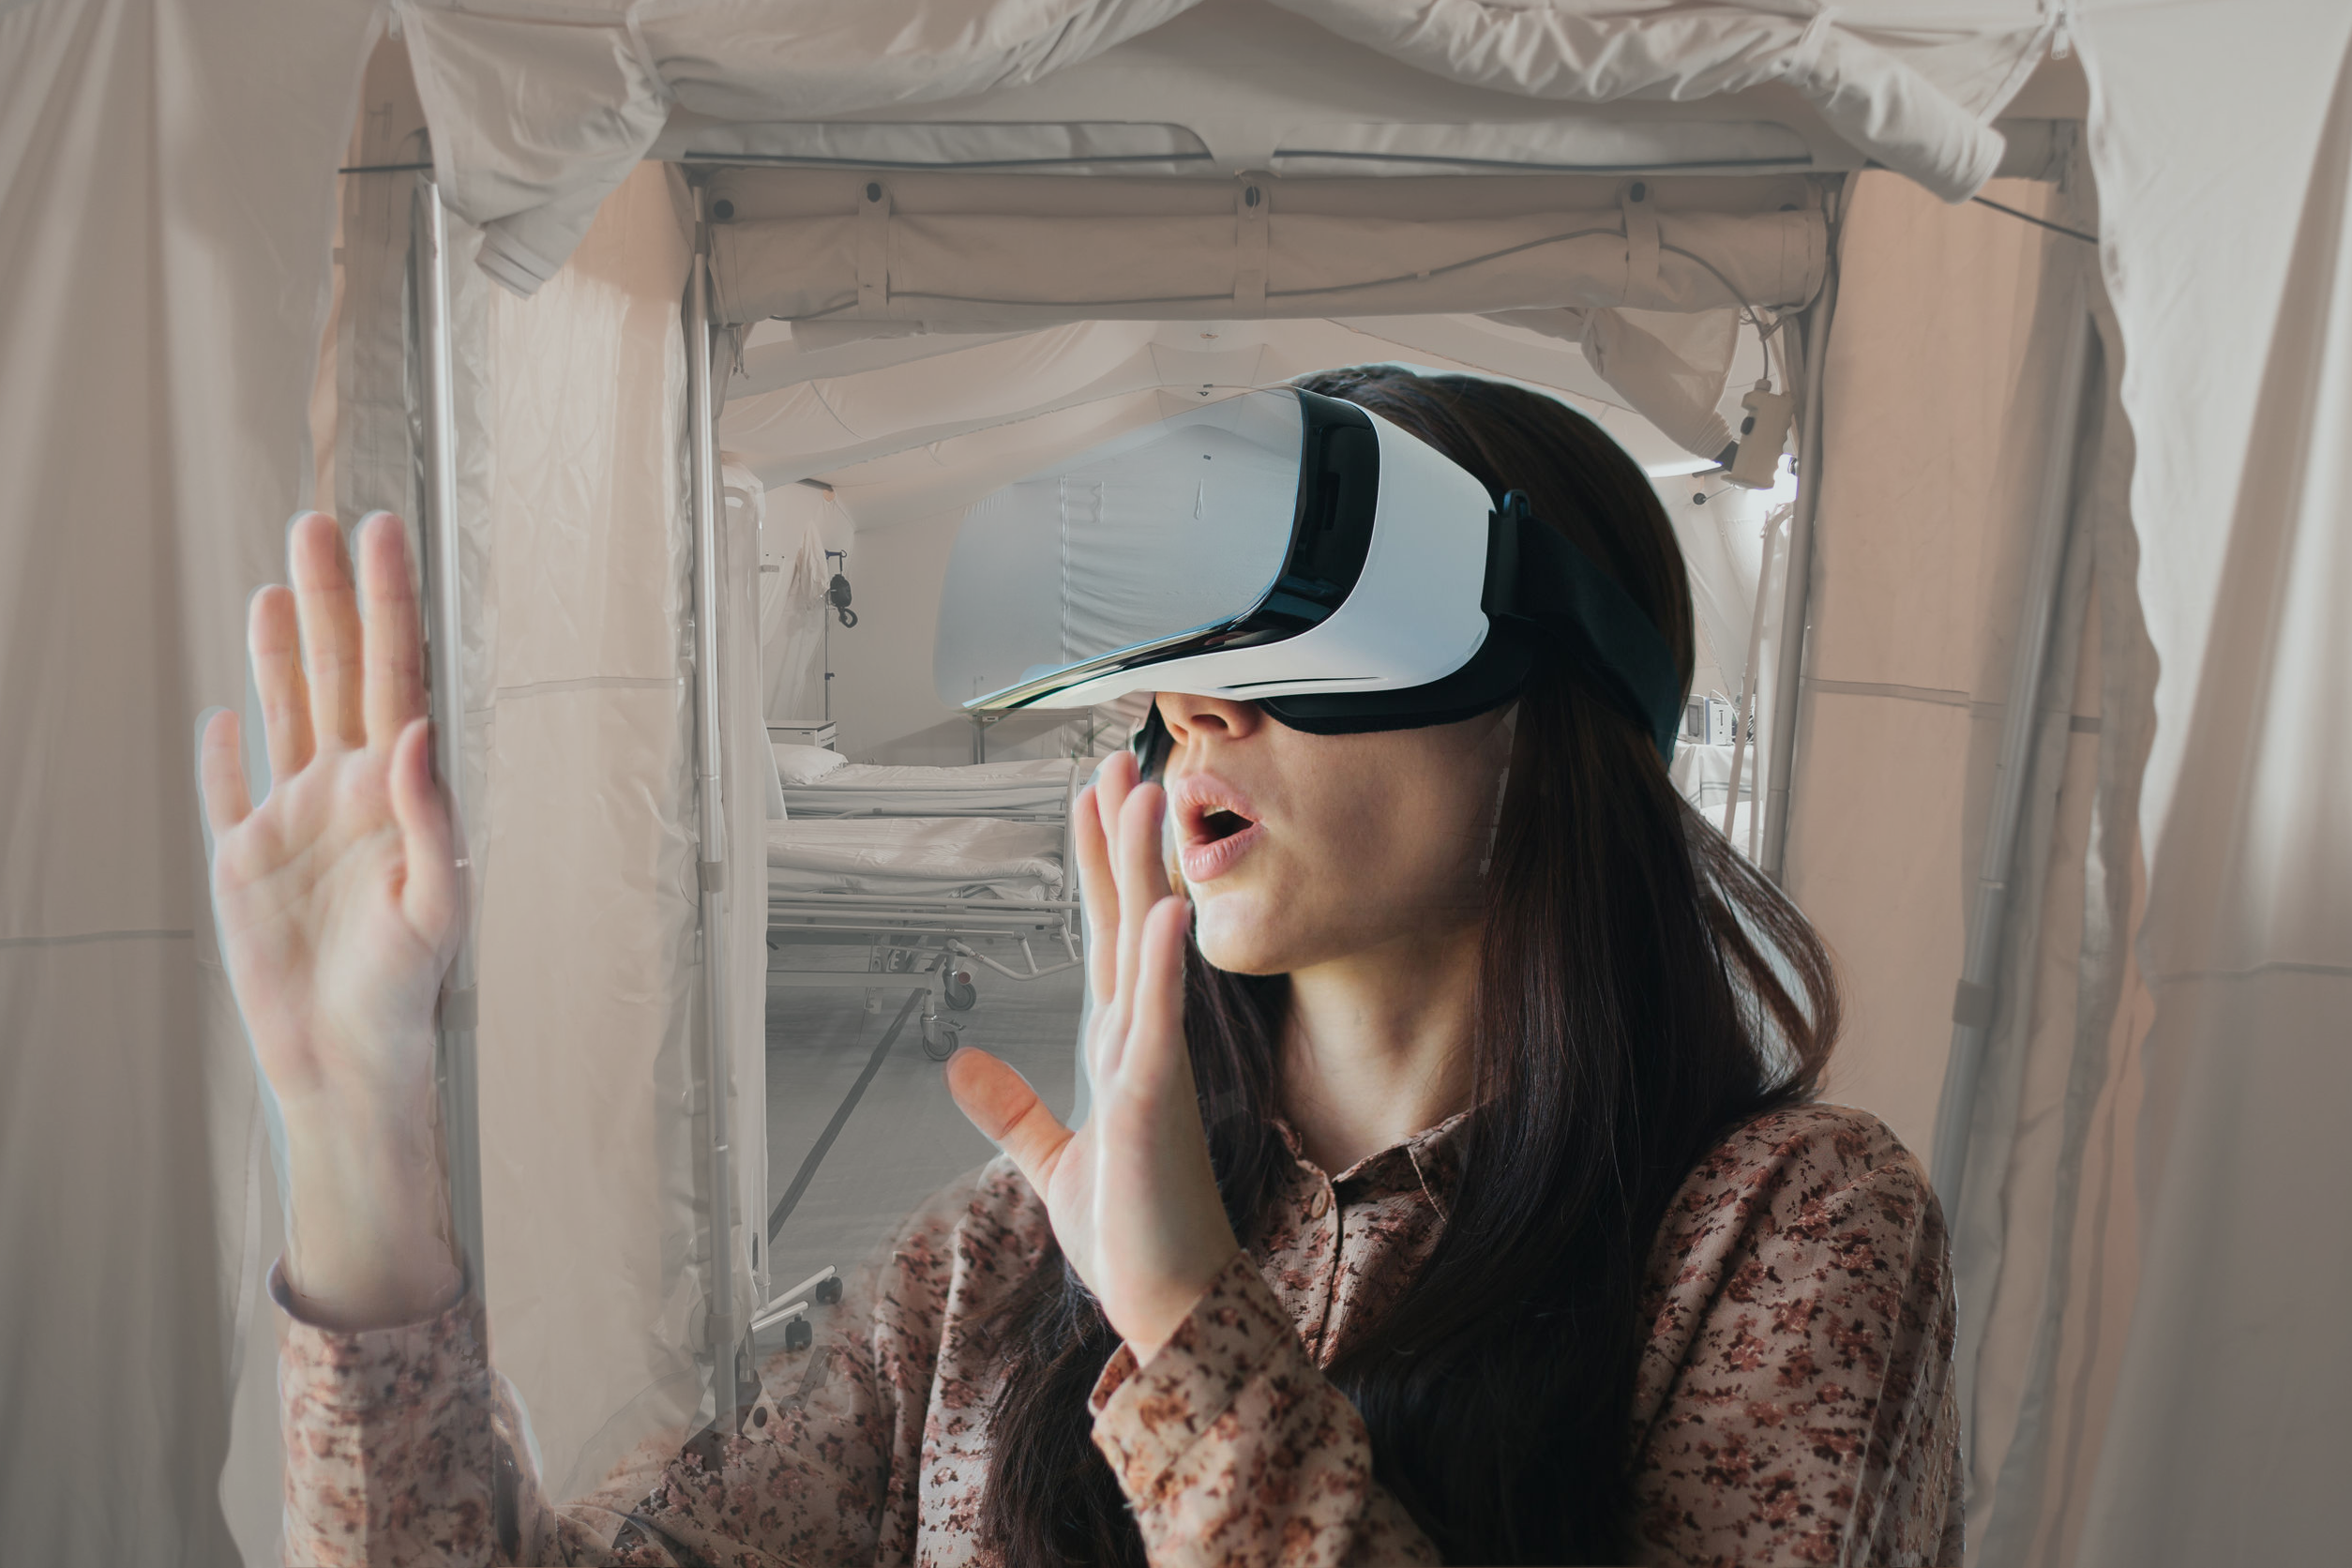 InnovateUK grant for Near-Life VR learning project